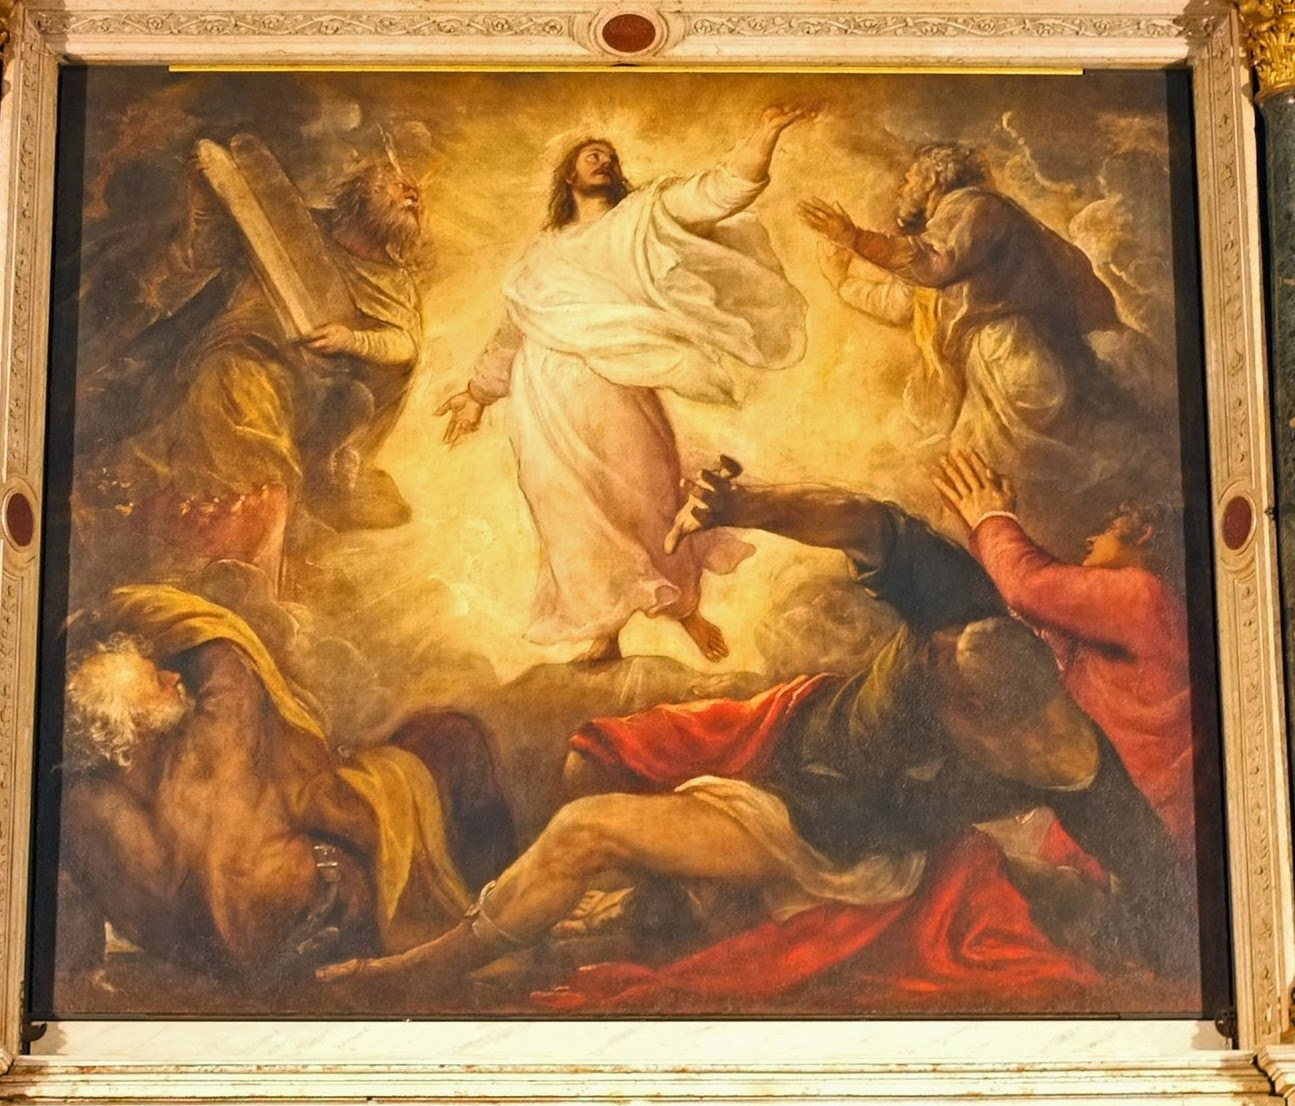 The painting of the Transfiguration by Titian in the church of San Salvador in Venice